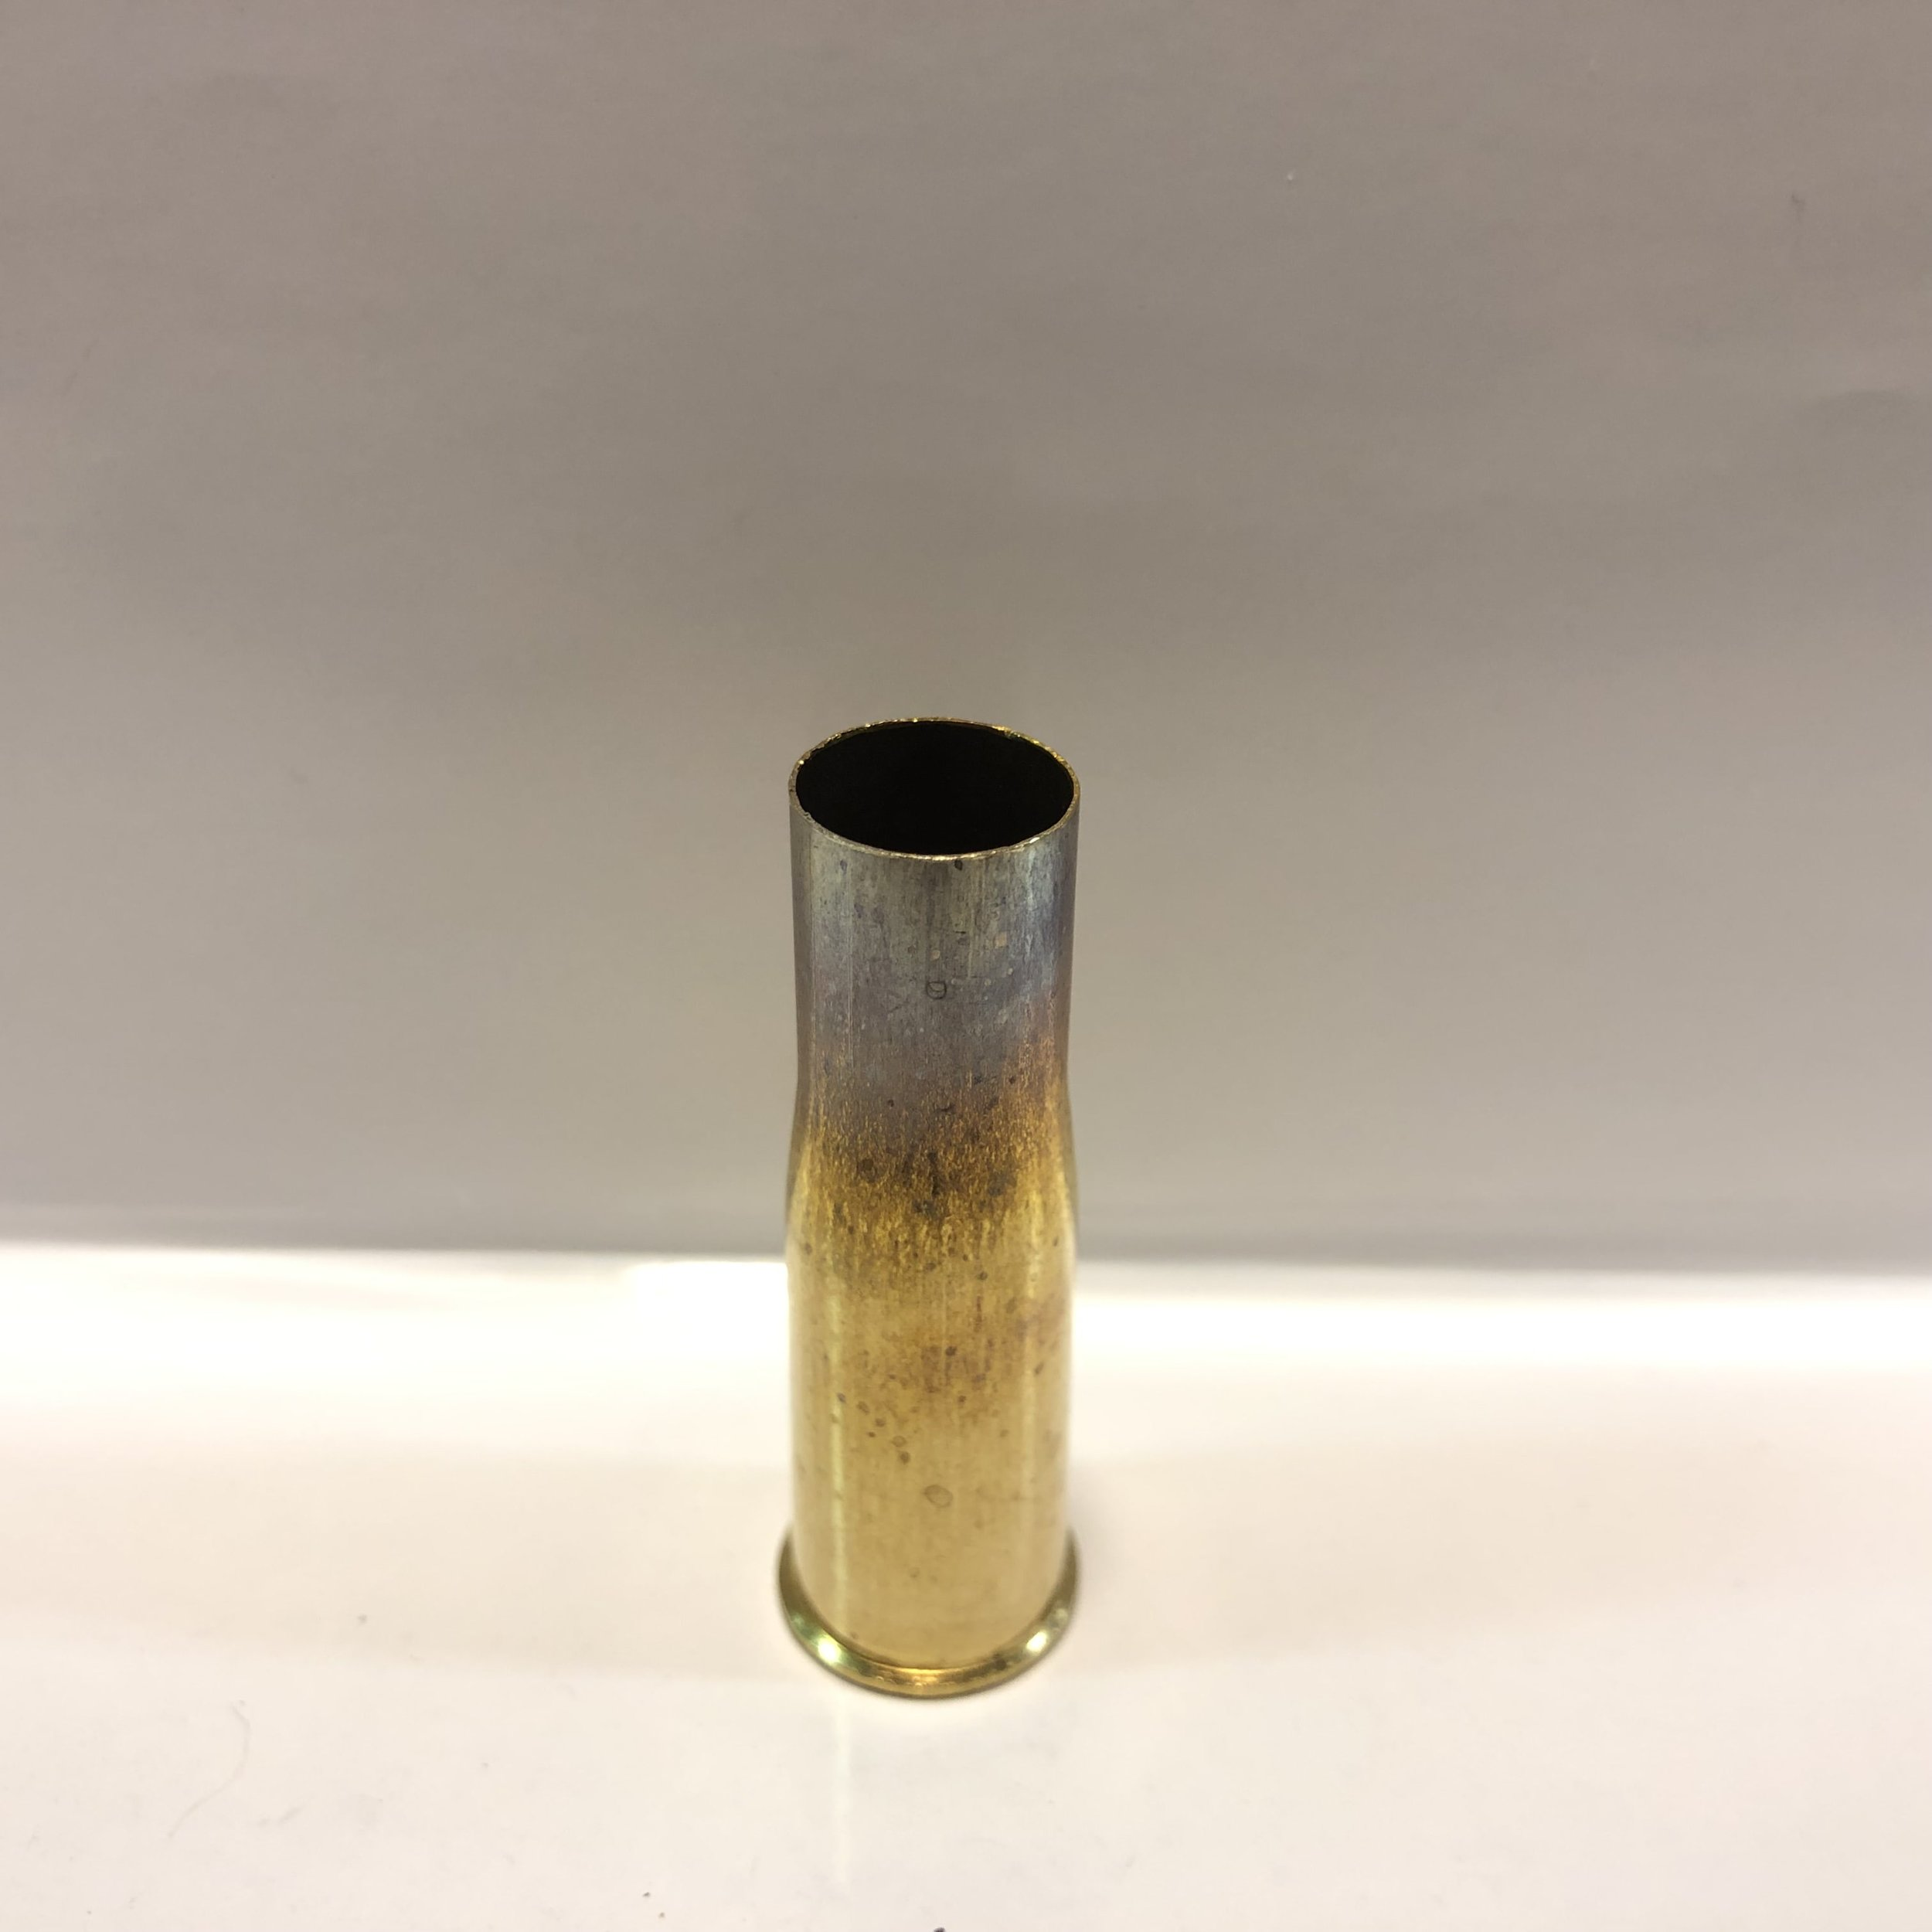 45/75 Winchester Center Fire AmmunitionArtifacts